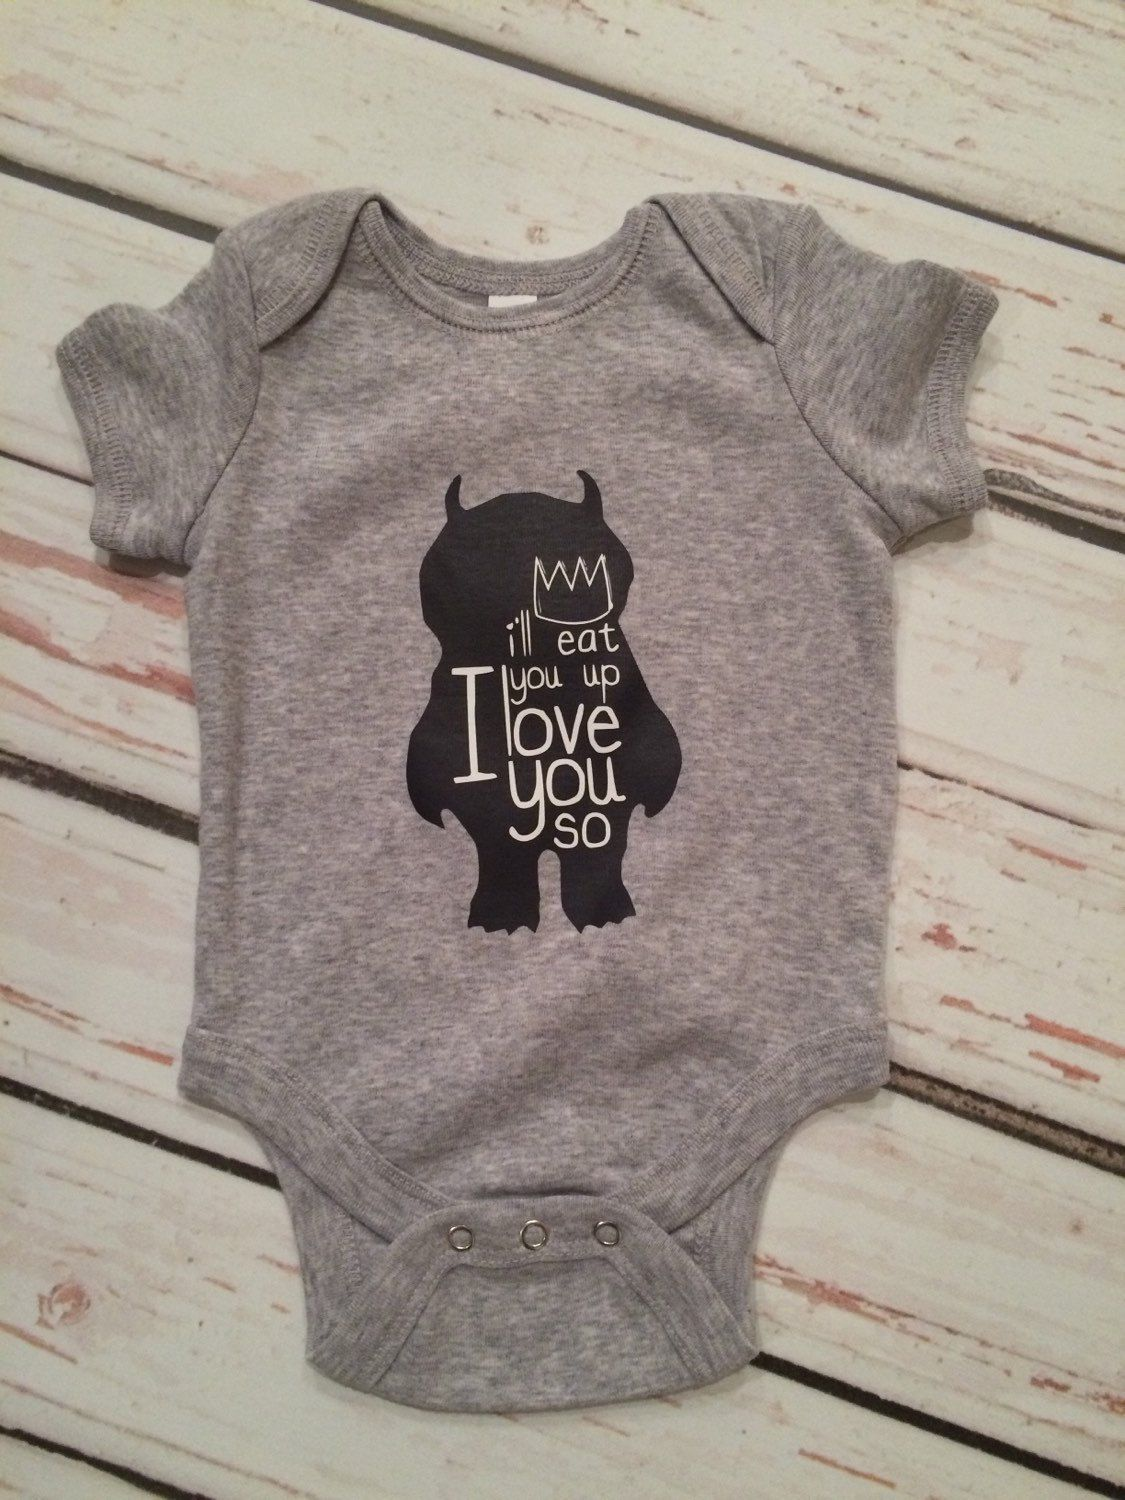 Where the wild things are bodysuit, baby boy clothes, baby girl clothes, I'll eat you up I love you so, monster baby bodysuit by Twelve20Designs on Etsy https://www.etsy.com/listing/231250031/where-the-wild-things-are-bodysuit-baby